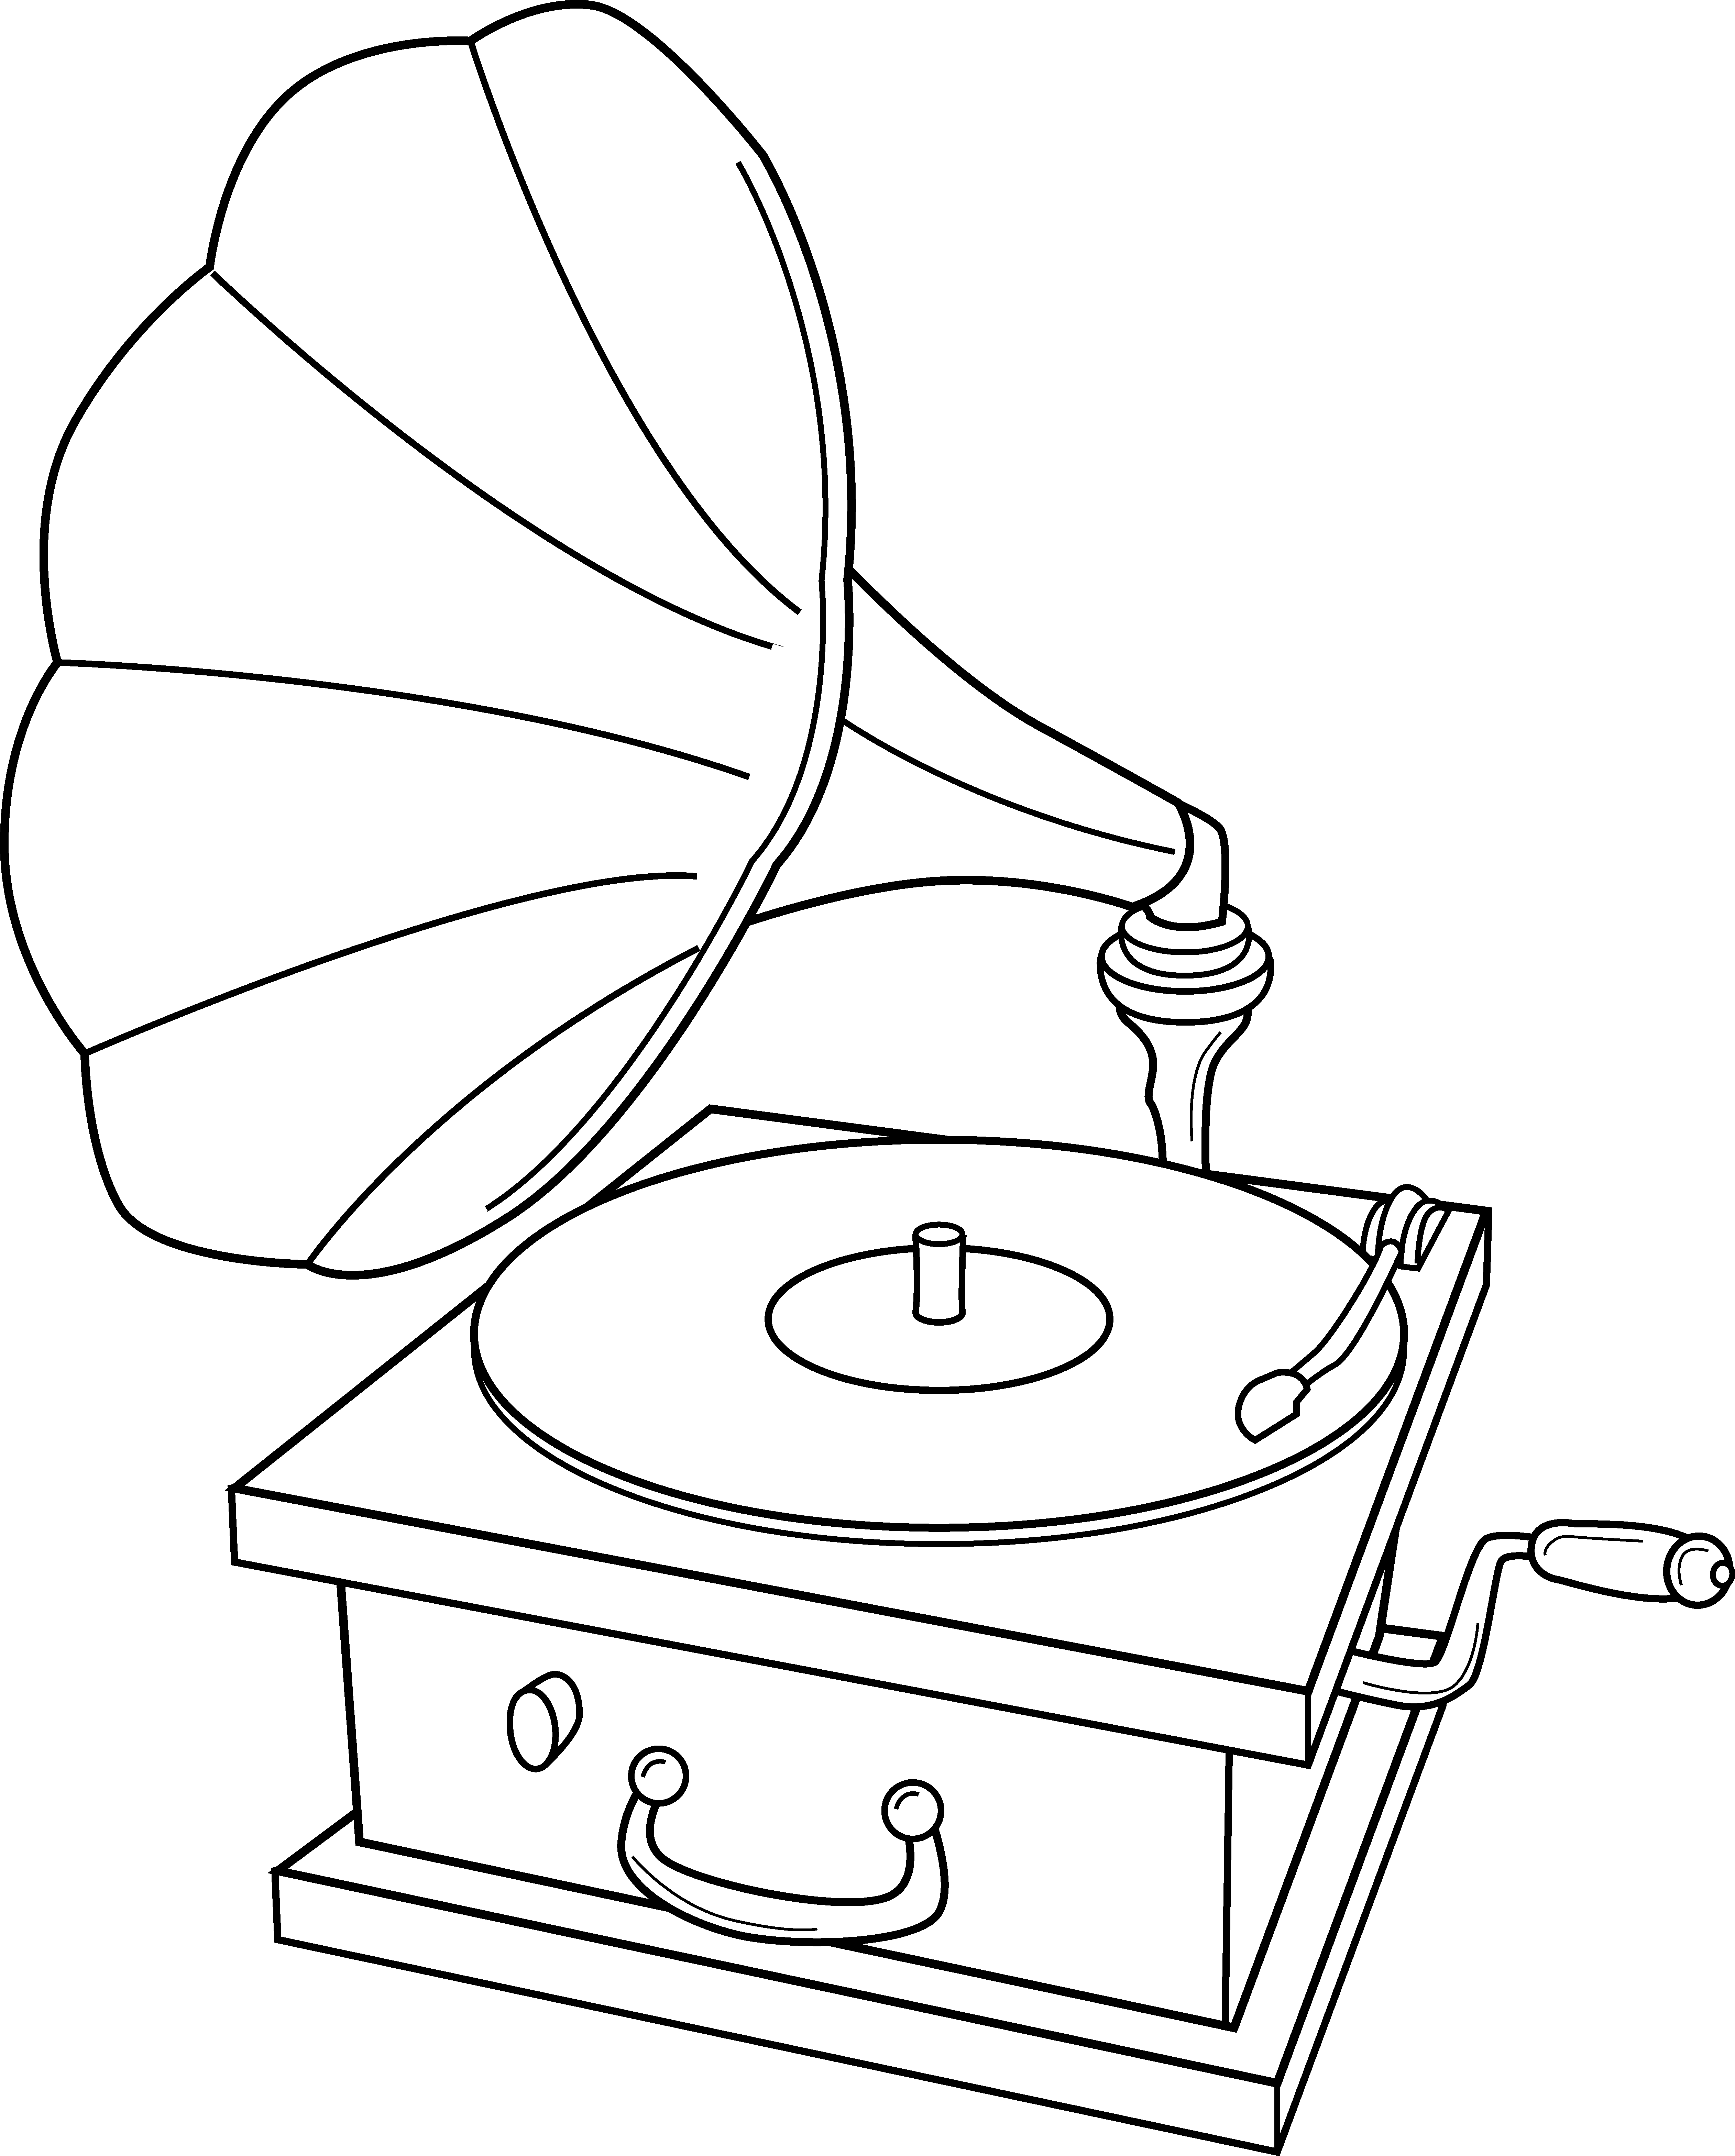 Gramophone clipart phonograph Player Record Player Clip Record